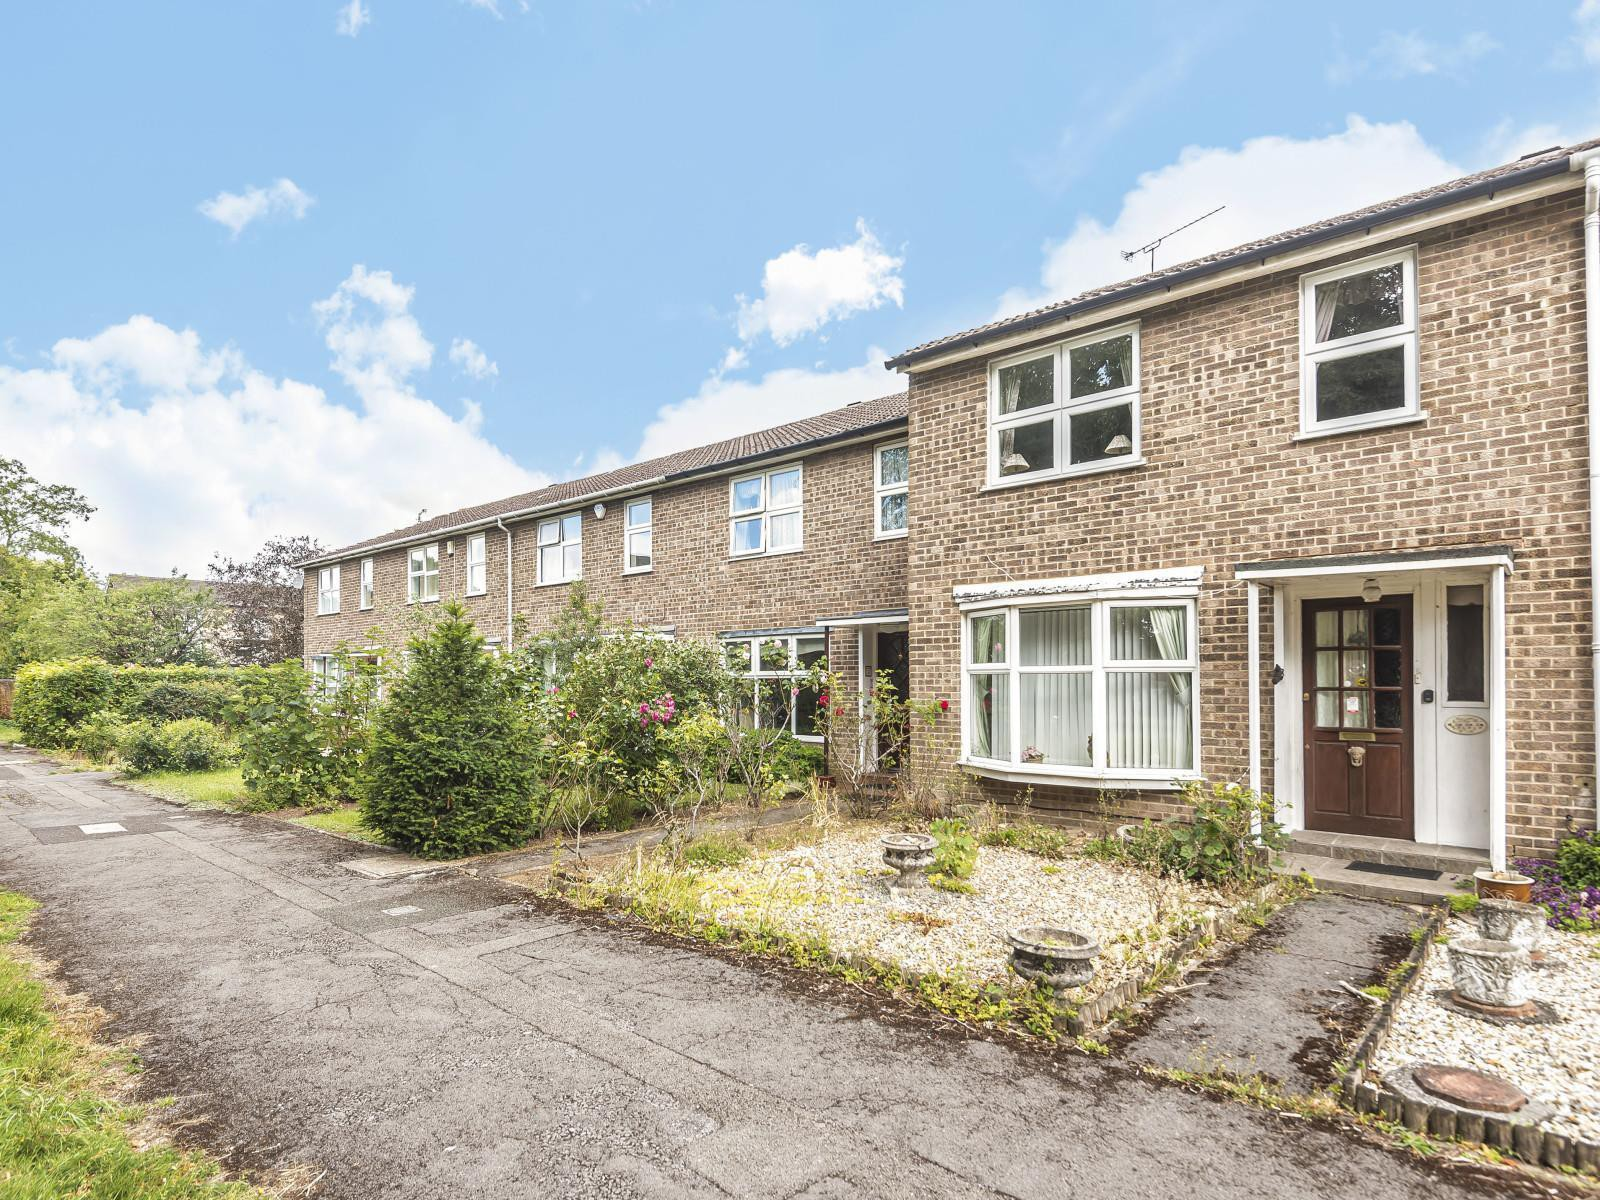 Tazewell Court, Reading, RG1 6HQ